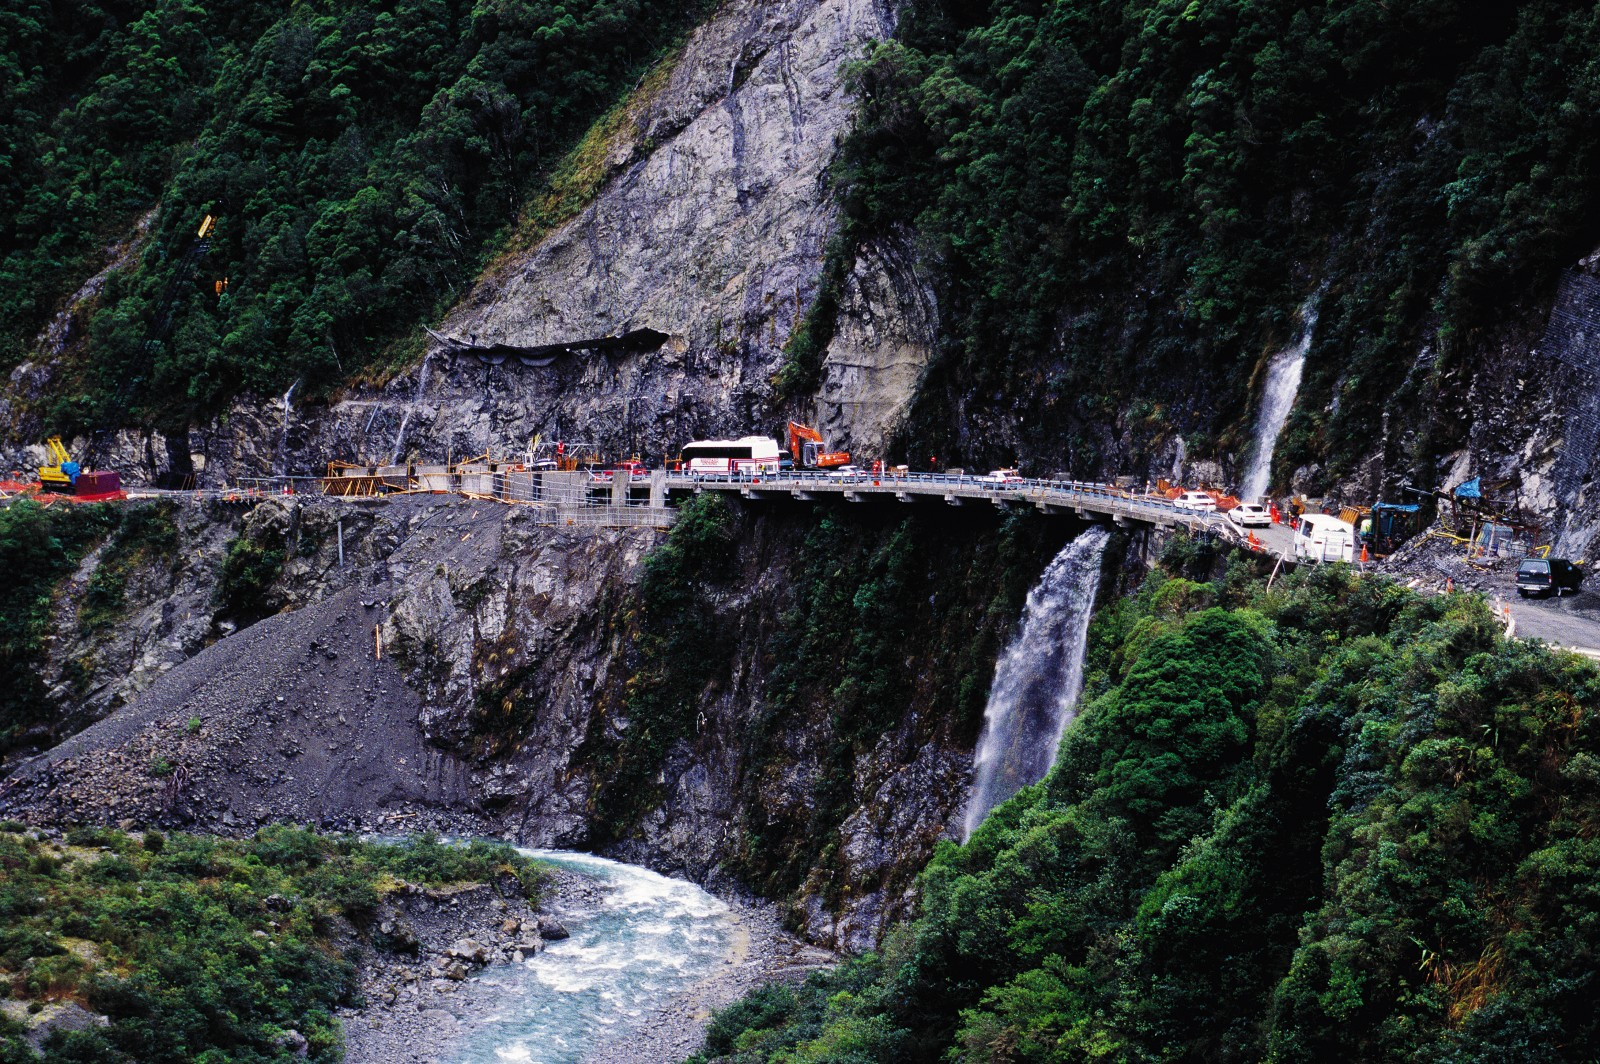 Transit New Zealand recently spent $39 million on improving the road between Arthur's Pass and Otira, building a 440 m viaduct and a new bridge and upgrading a particularly treacherous 900 m of road between Candy's Bend and Starvation Point-shown here. In this area, the road was little more than a narrow ledge cut into the mountainside, regularly raked by rockfalls. New Cantilevers have widened the road, and a concrete roof-completed since this photograph was taken-protects the most vulnerable section from tumbling boulder.